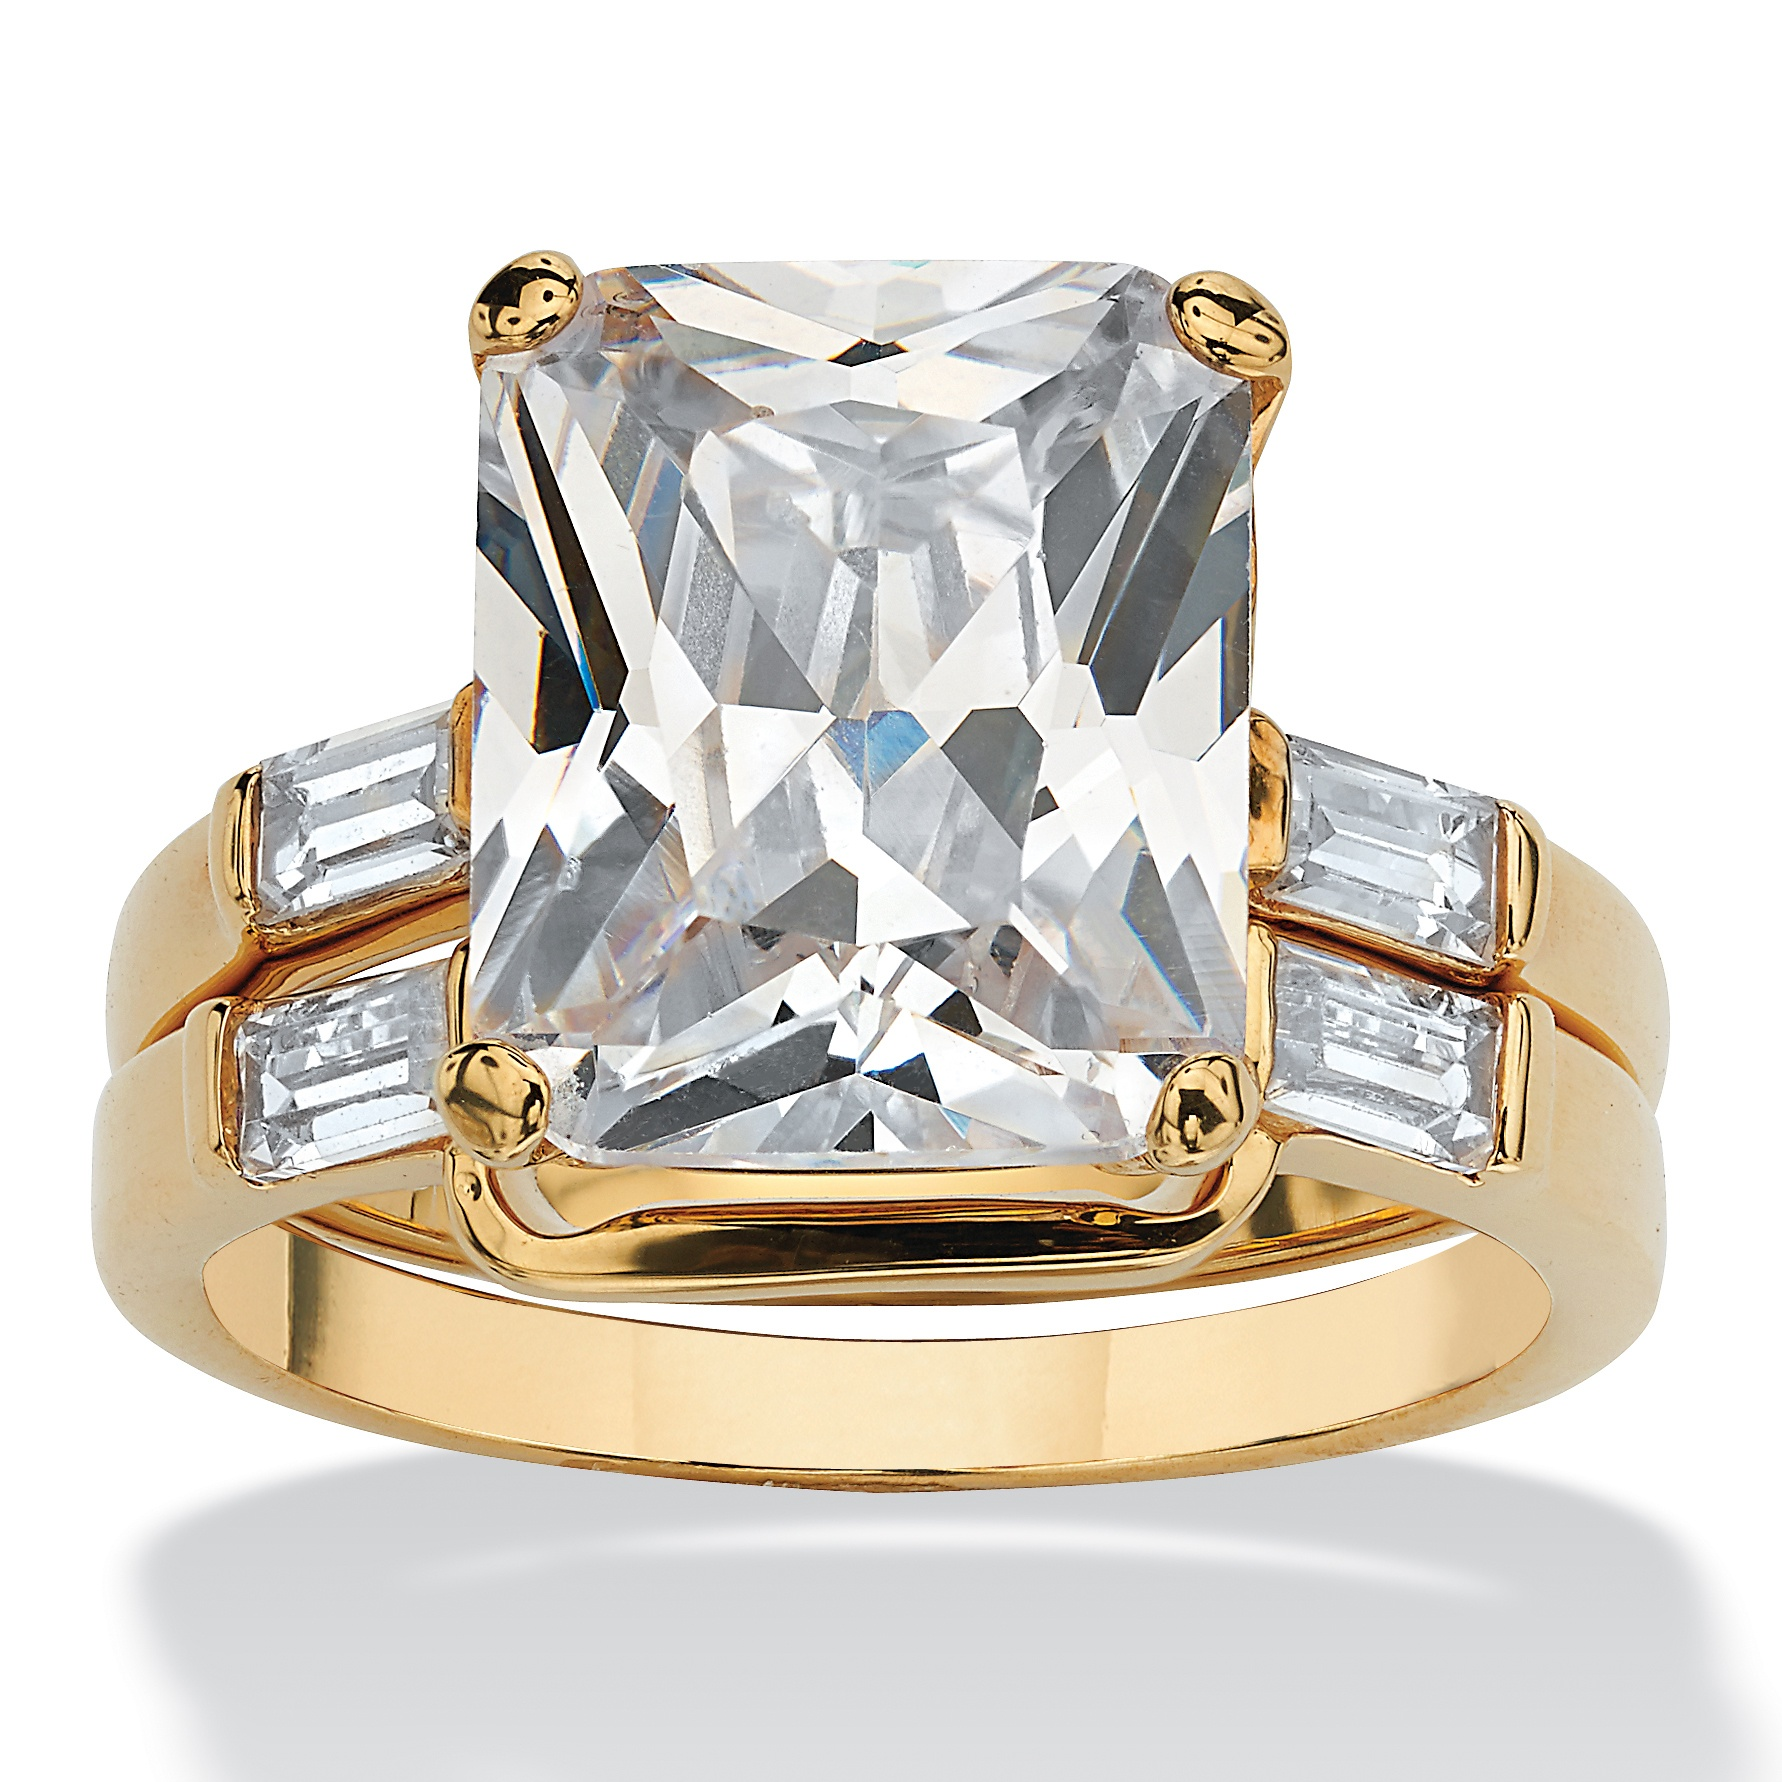 7.56 TCW Emerald-Cut Cubic Zirconia 14k Yellow Gold-Plated Bridal Engagement Ring Wedding Band Set